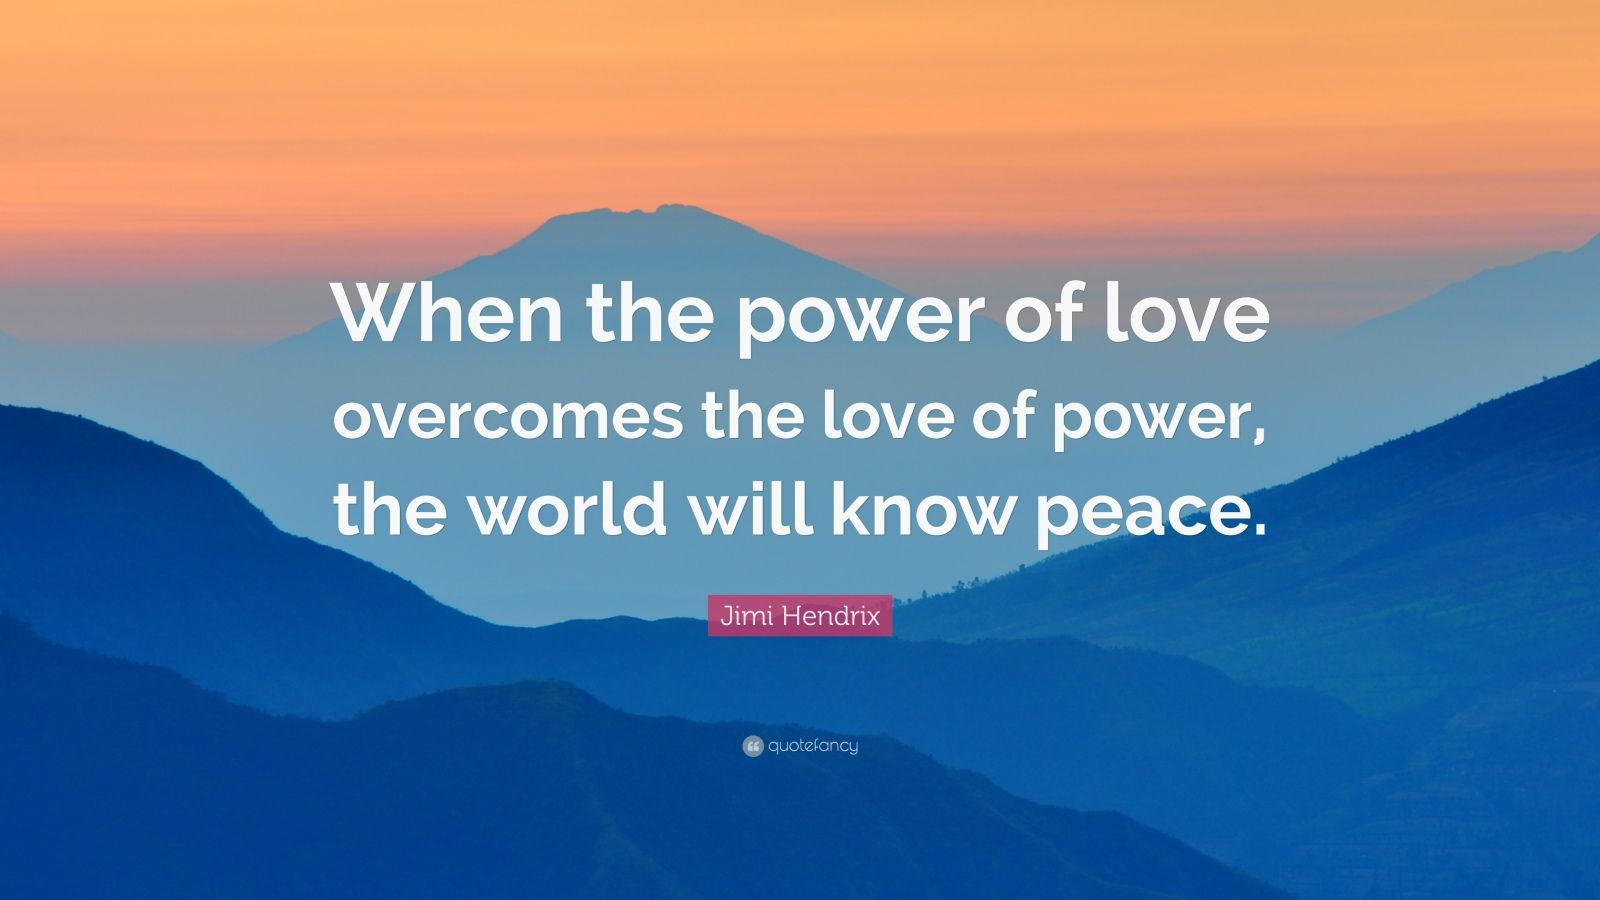 Mother Love Wallpapers With Quotes Jimi Hendrix Quote When The Power Of Love Overcomes The